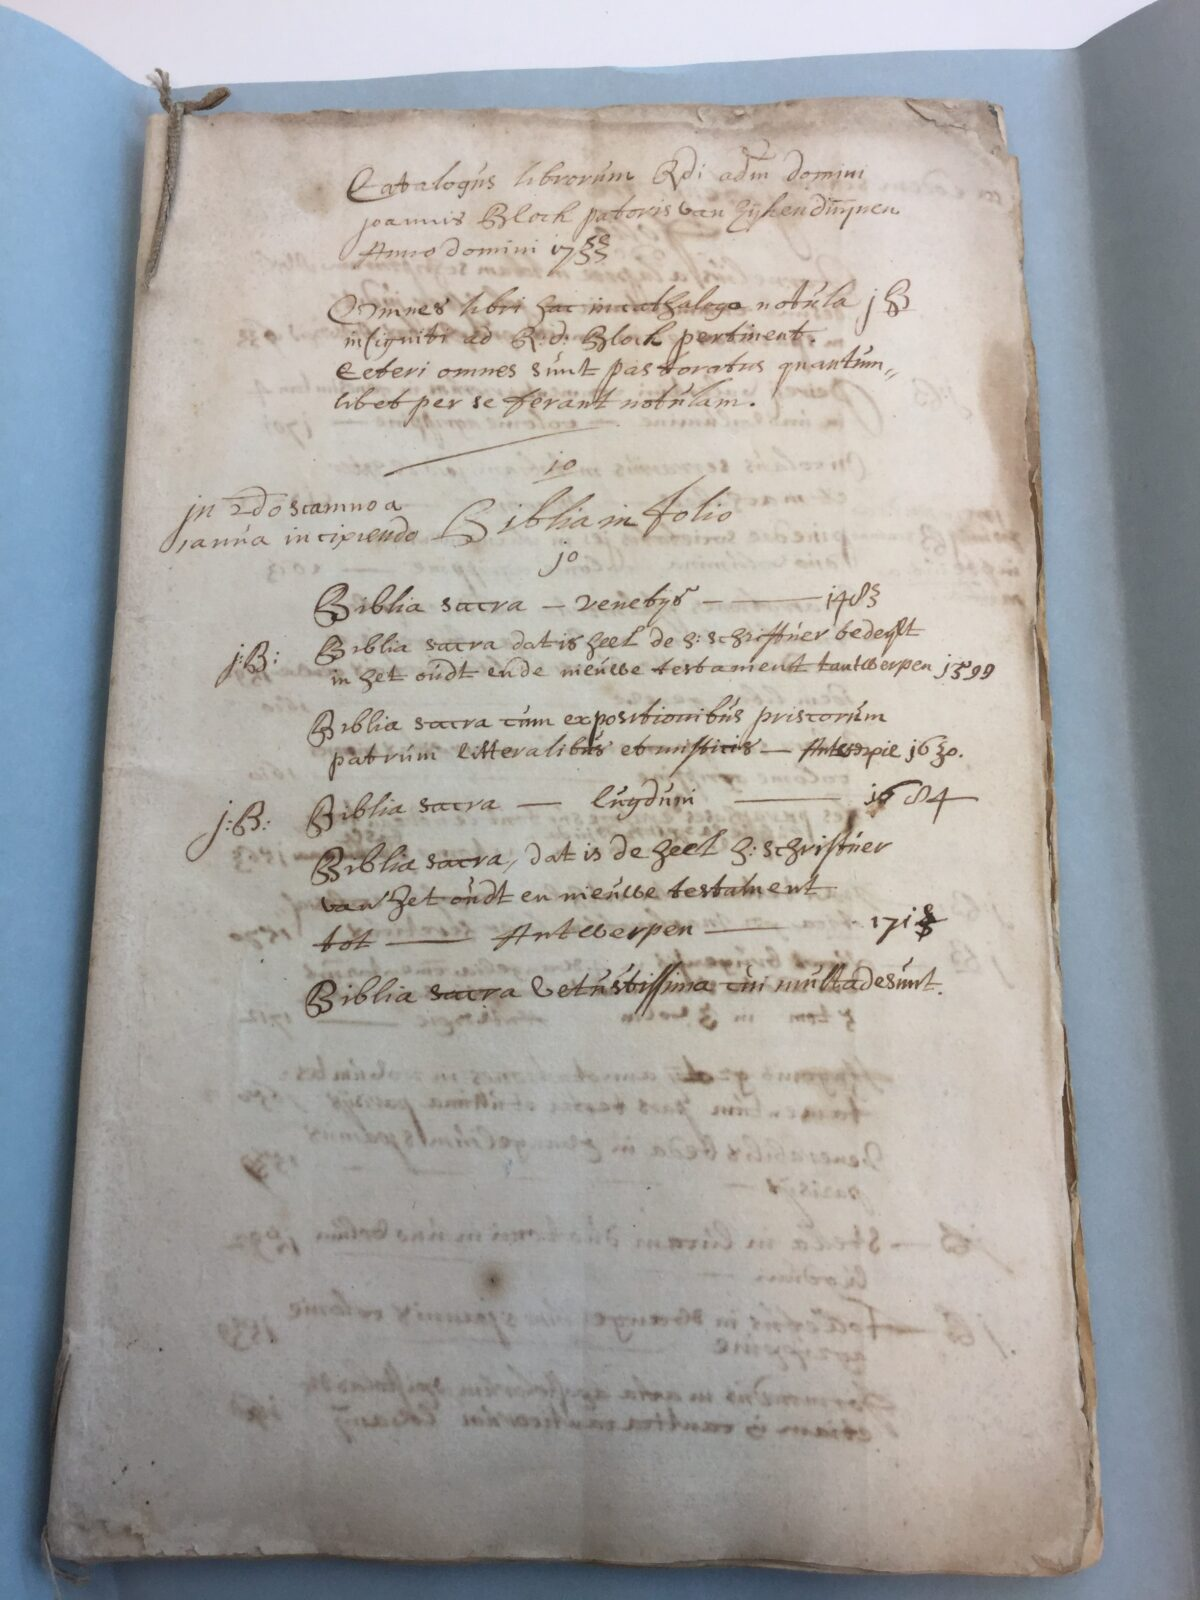 First page of the inventory of J. Blok